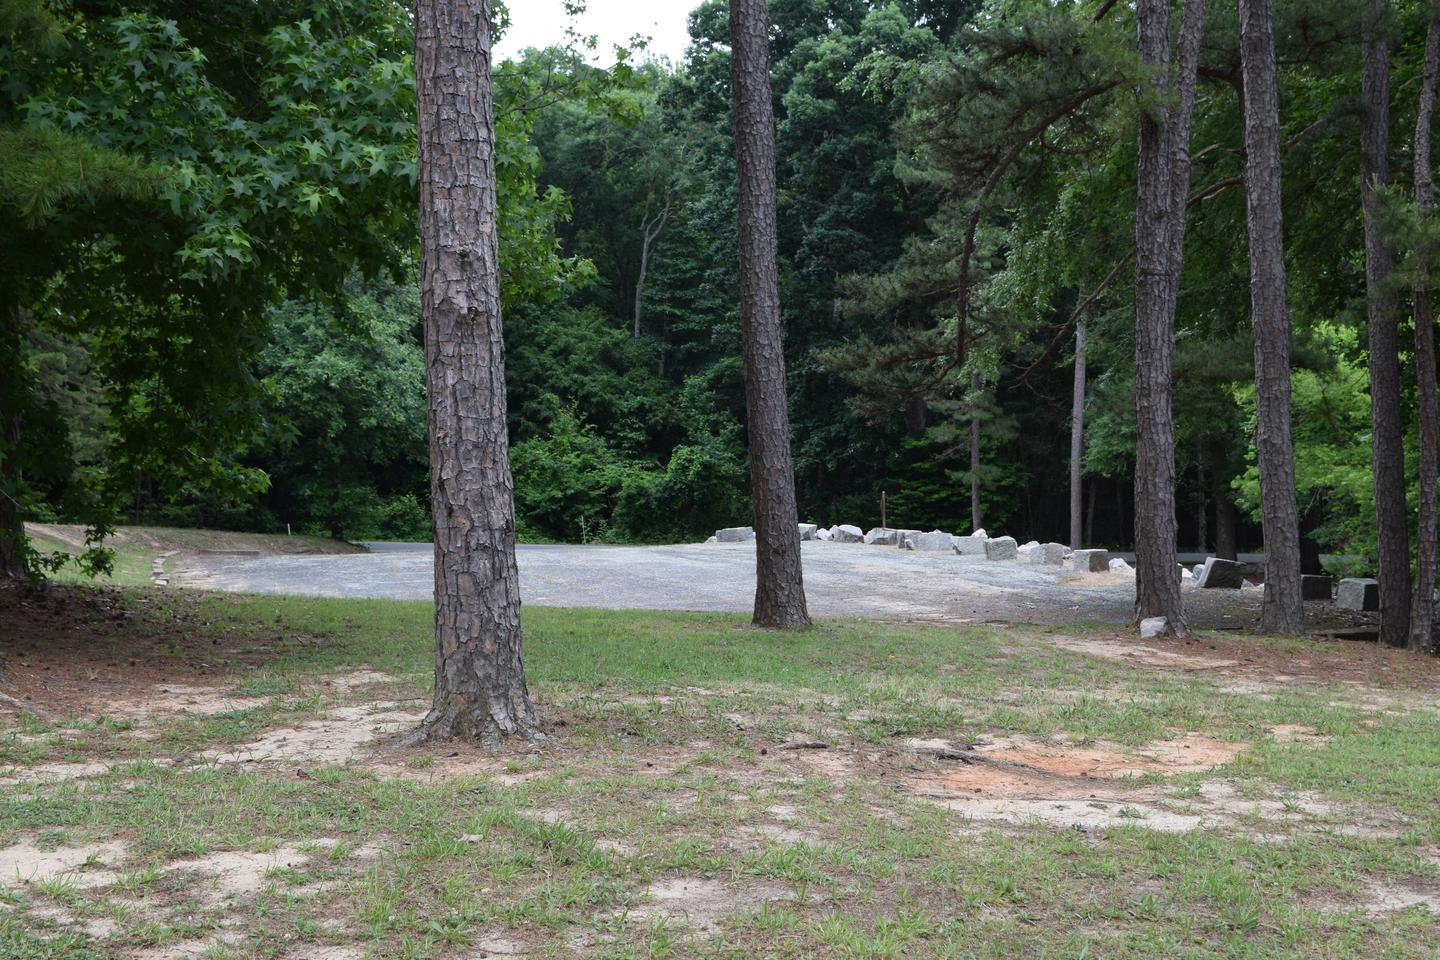 Mays Chapel Group Camping Area Overflow ParkingWelcome to Mays Chapel Group Camping Area! This is a picture of a parking lot located behind the group camping area. This parking lot is designed for people who are using the camping area as well as the beach area.